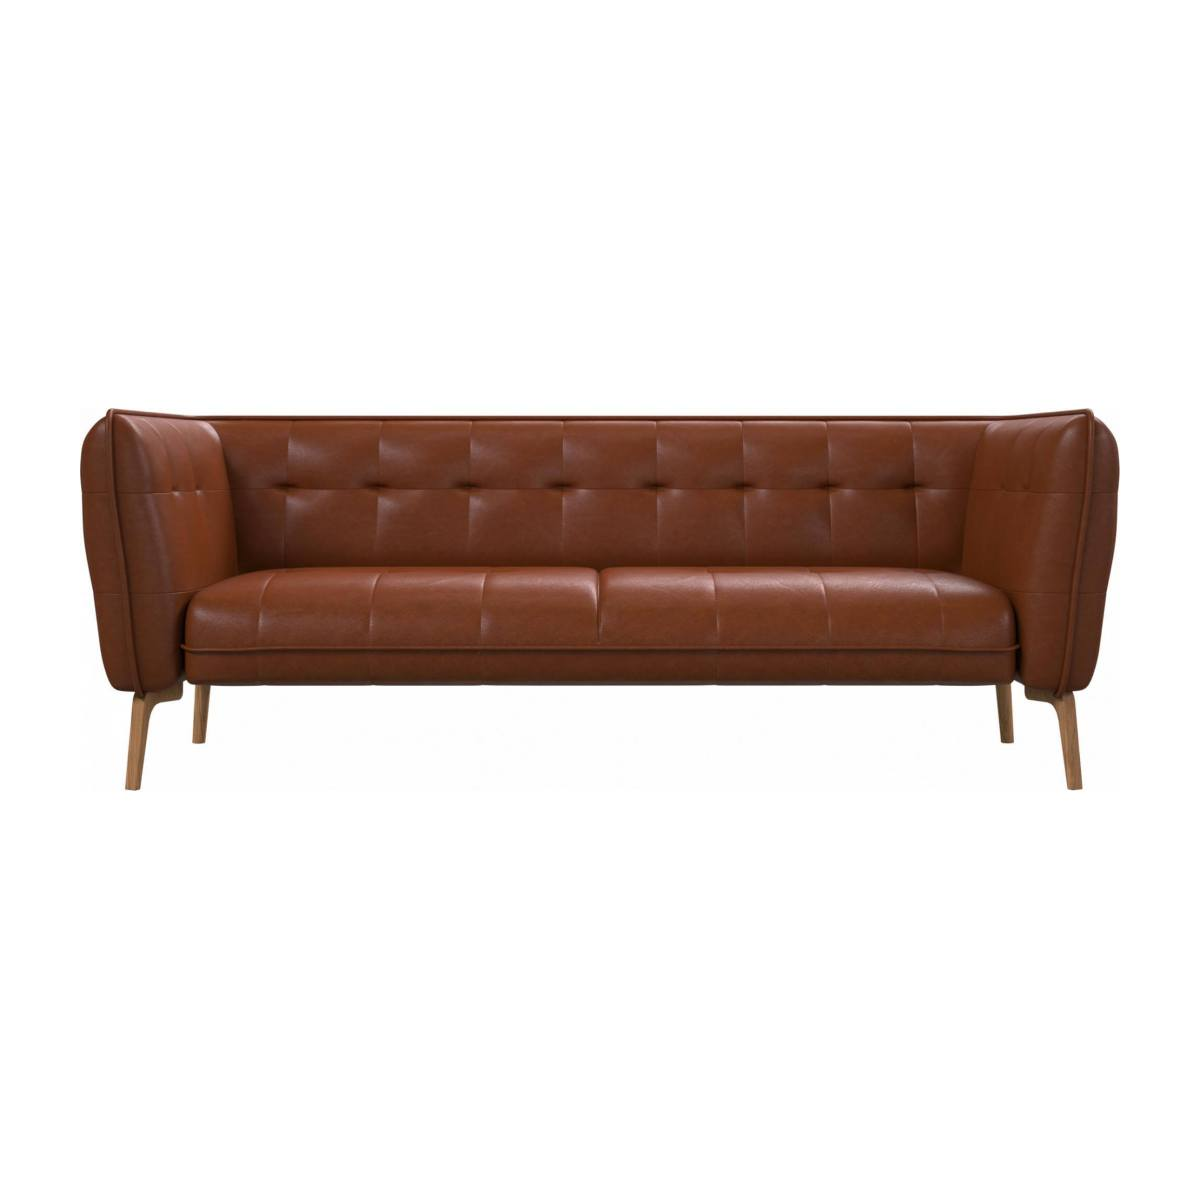 3 seater sofa in Vintage aniline leather, old chestnut and natural oak feet n°1